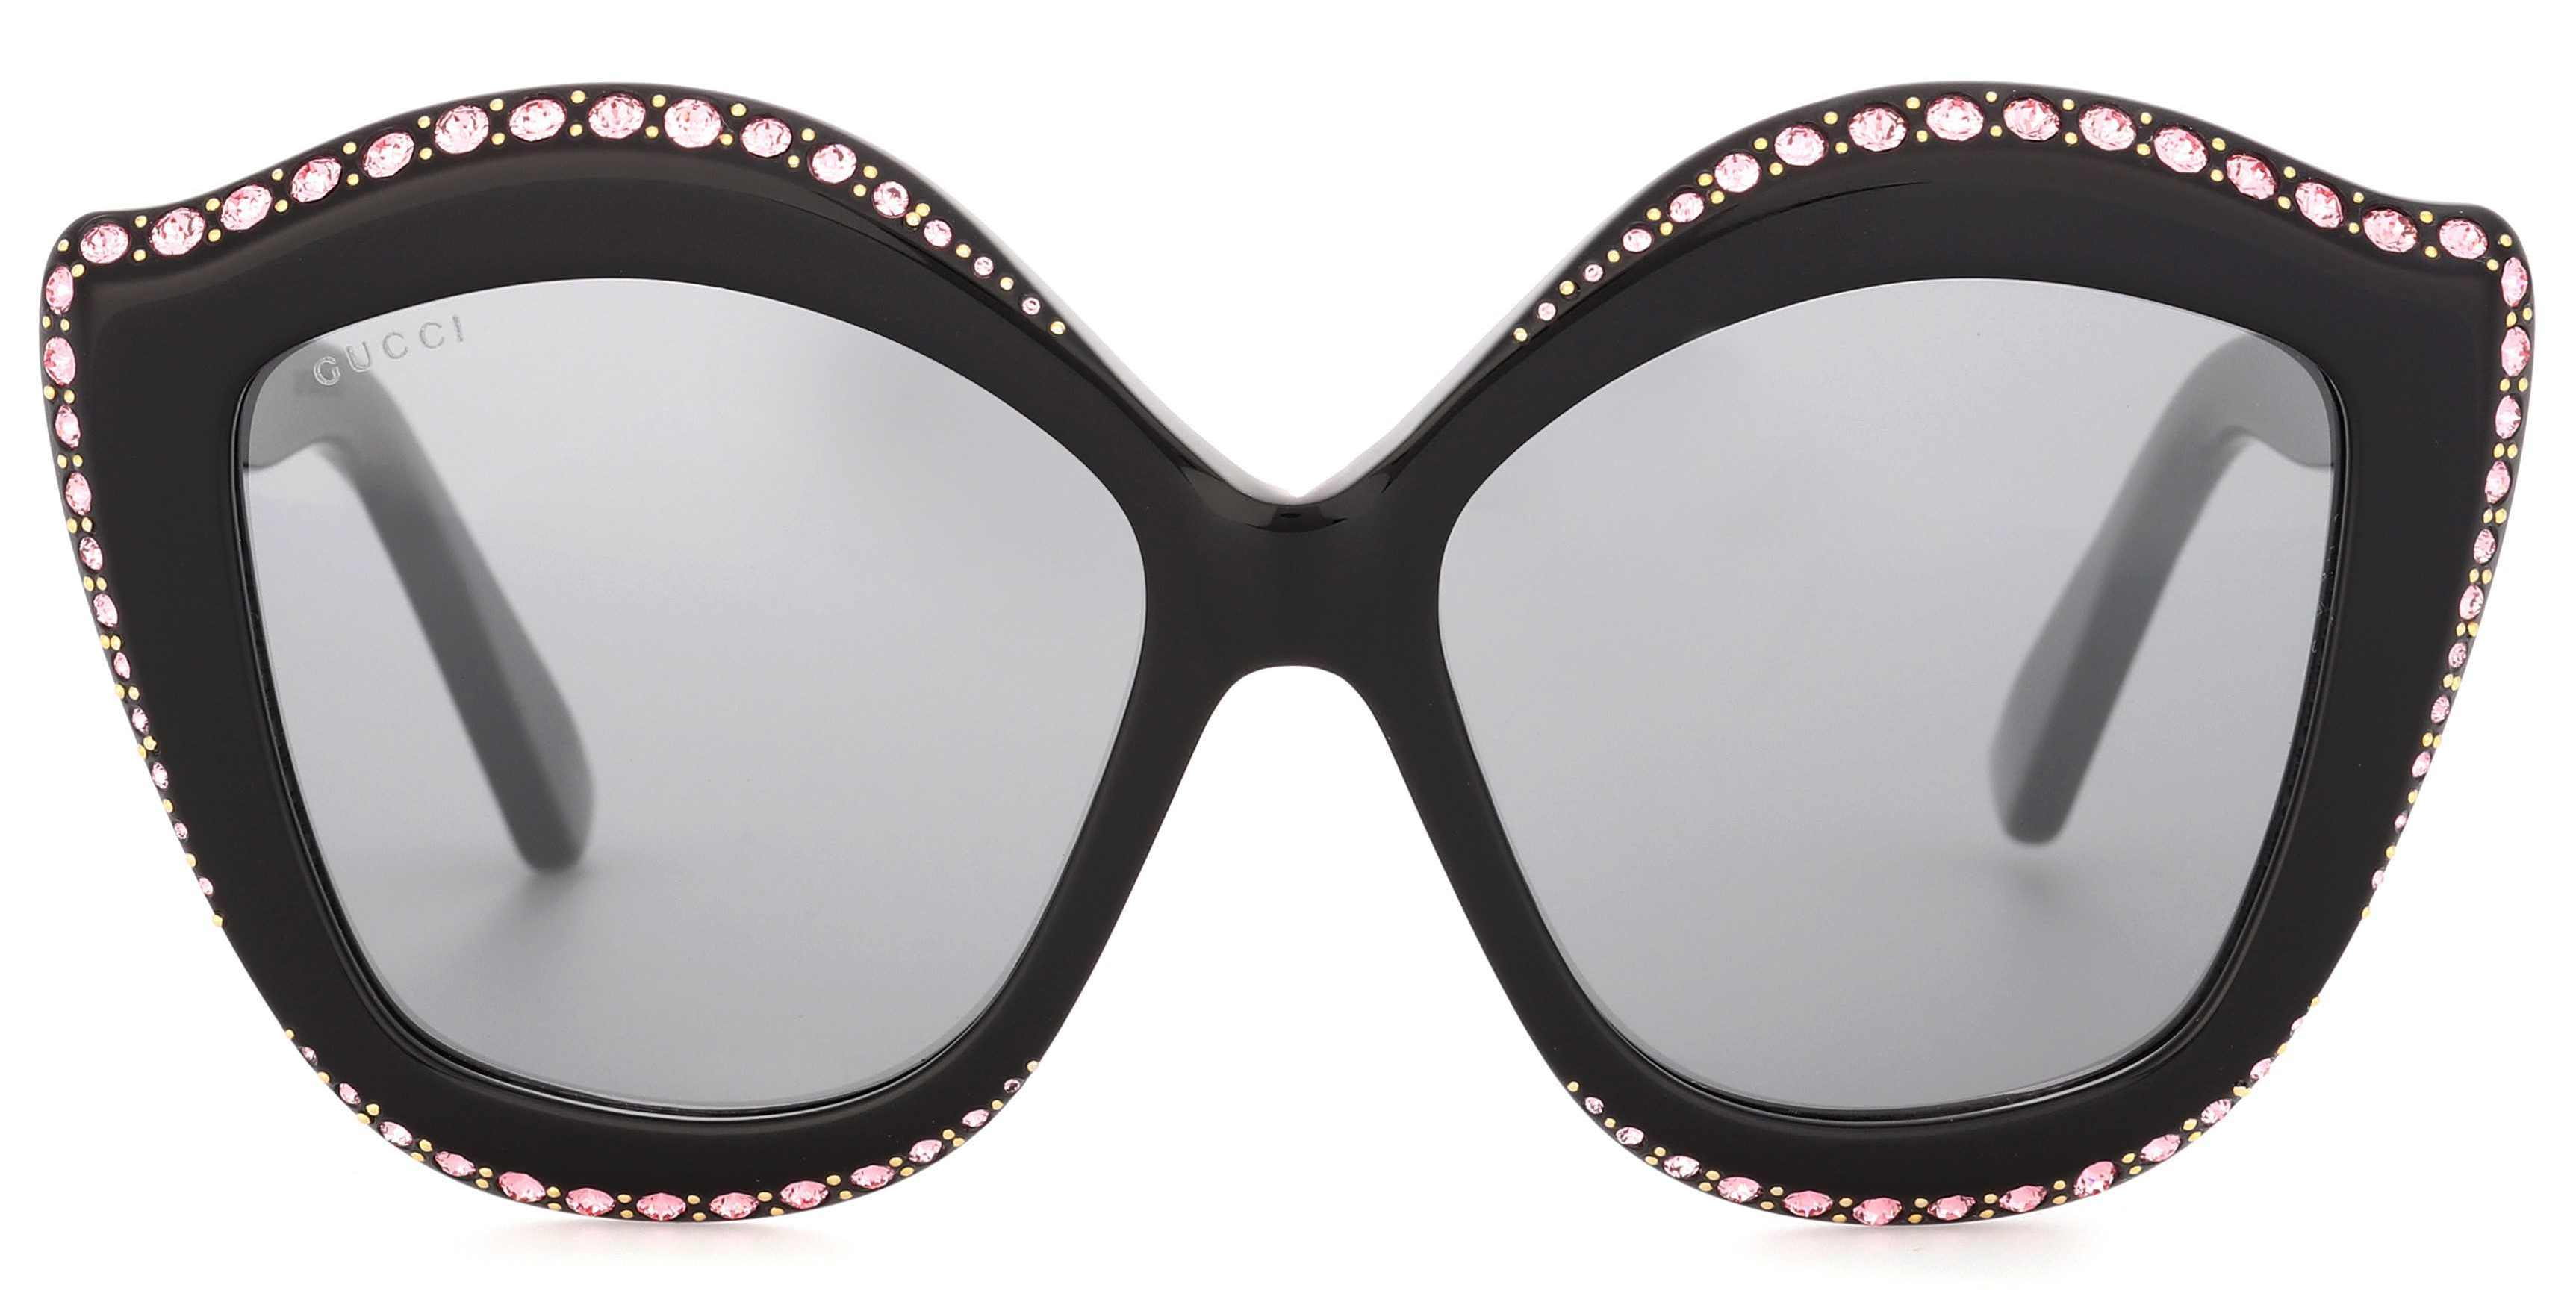 gucci-crystal-embellished-sunglasses